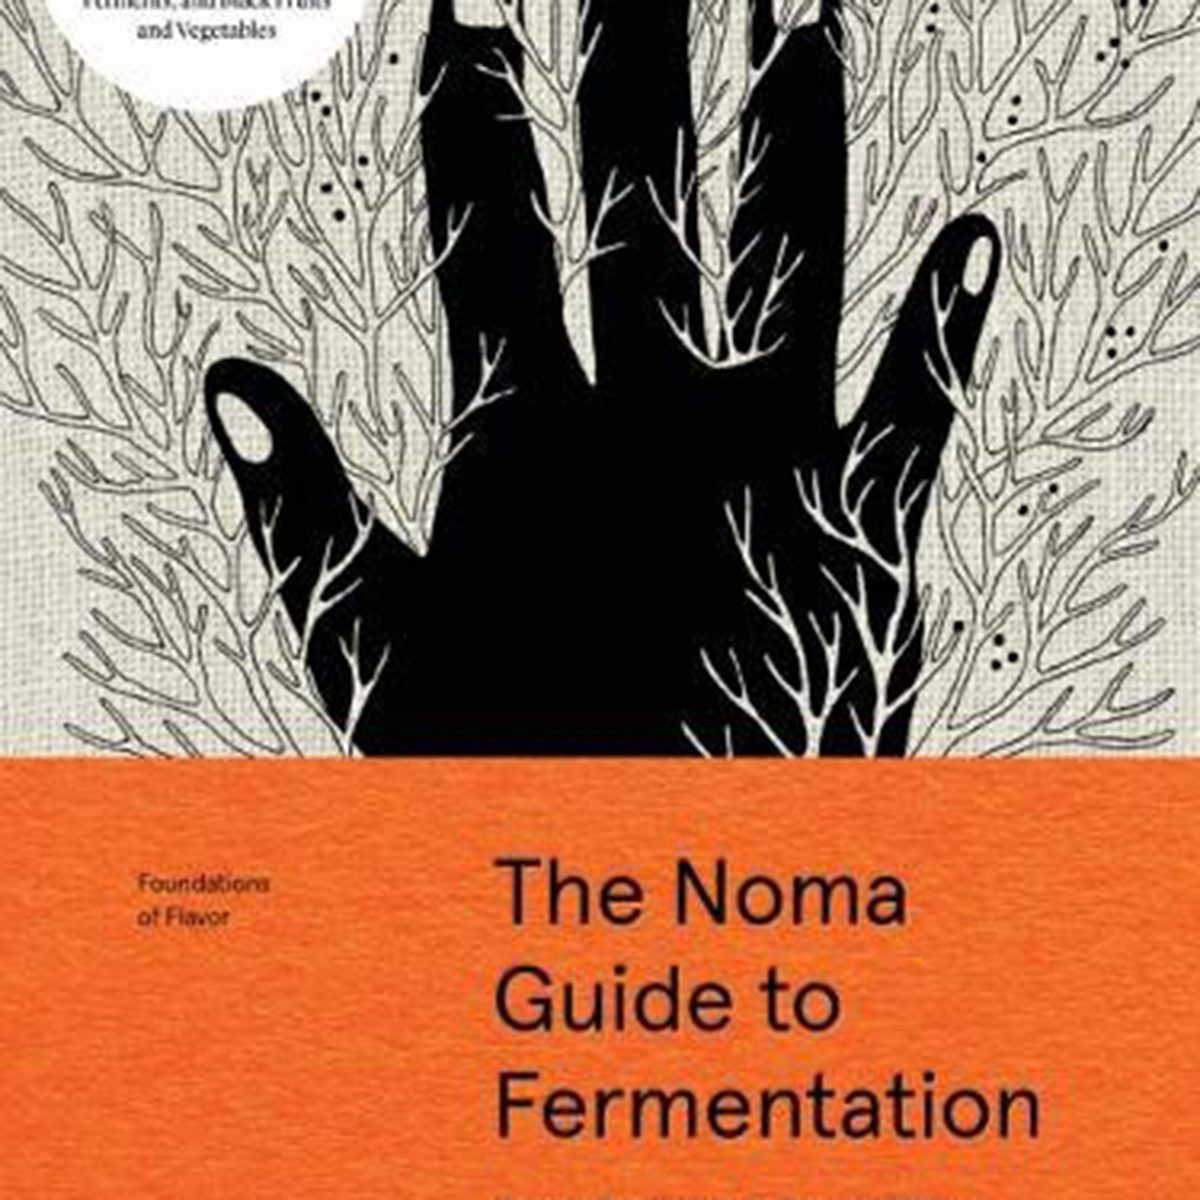 The Noma Guide to Fermentation; by René Redzepi and David Zilber